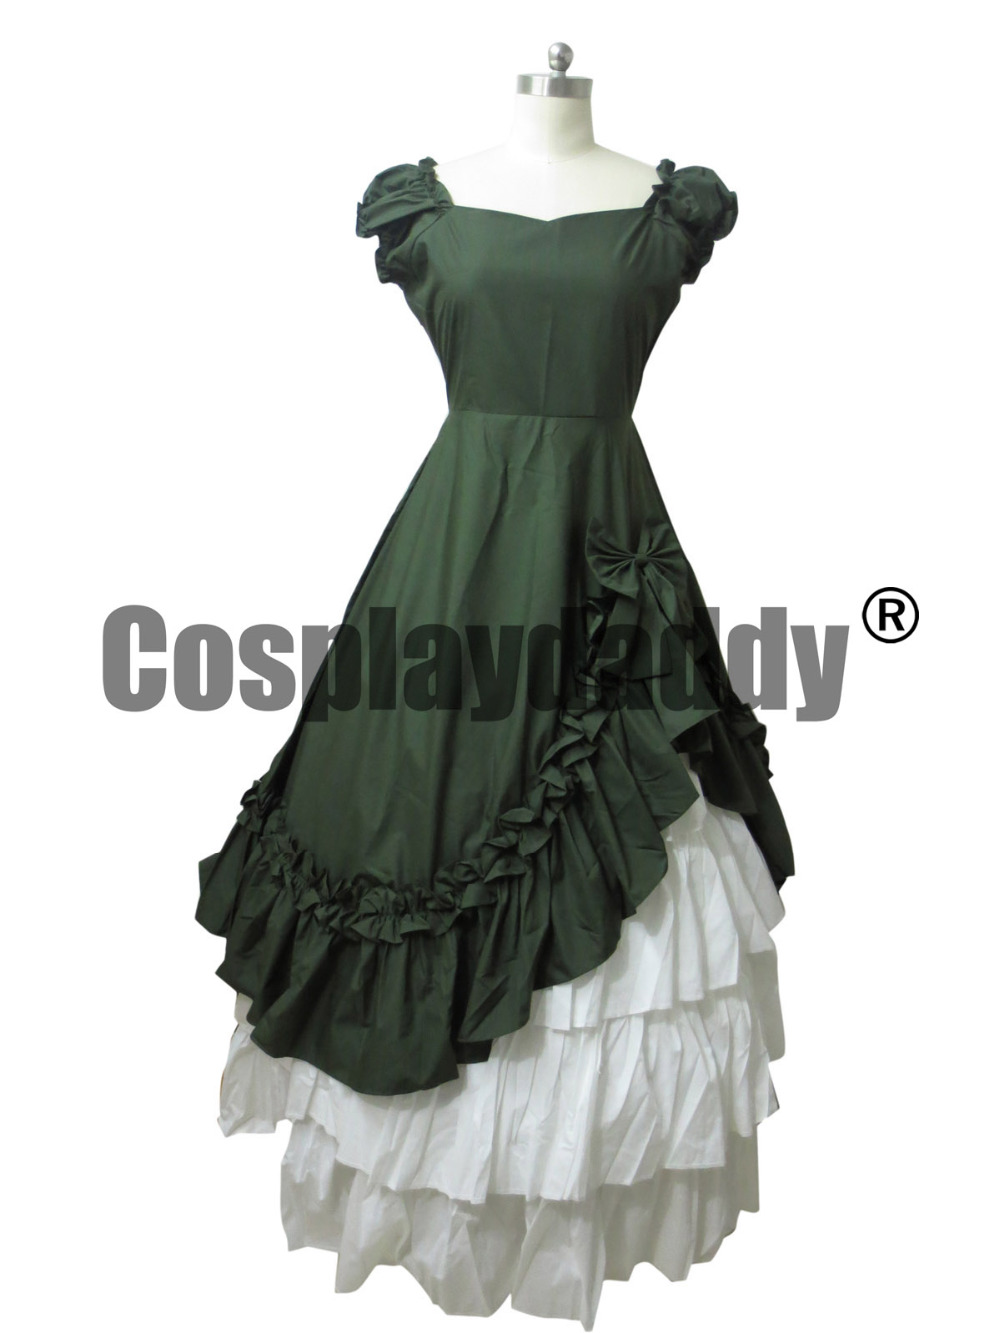 Southern Belle Victorian Ball Gown Dress Halloween Costume Reenactment Clothing